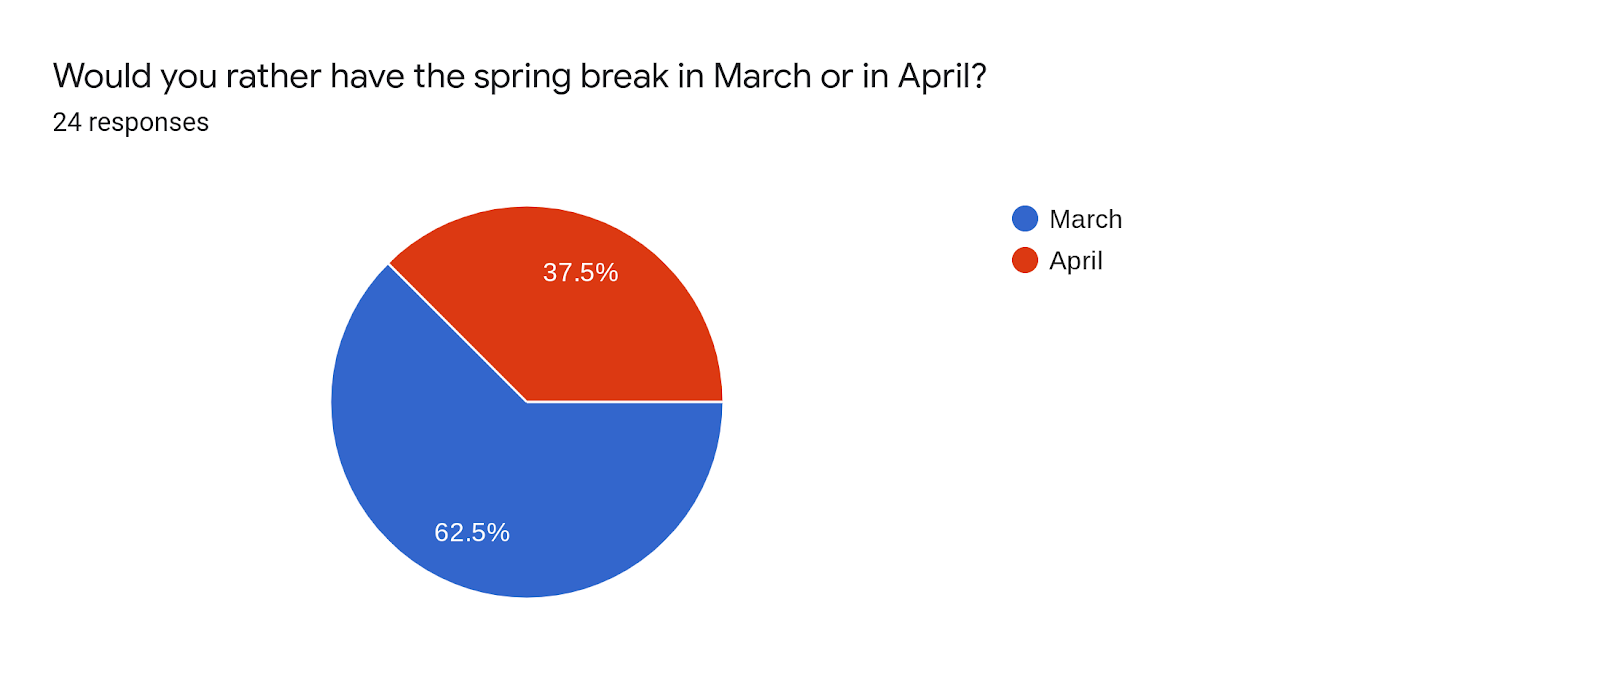 Forms response chart. Question title: Would you rather have the spring break in March or in April?. Number of responses: 24 responses.